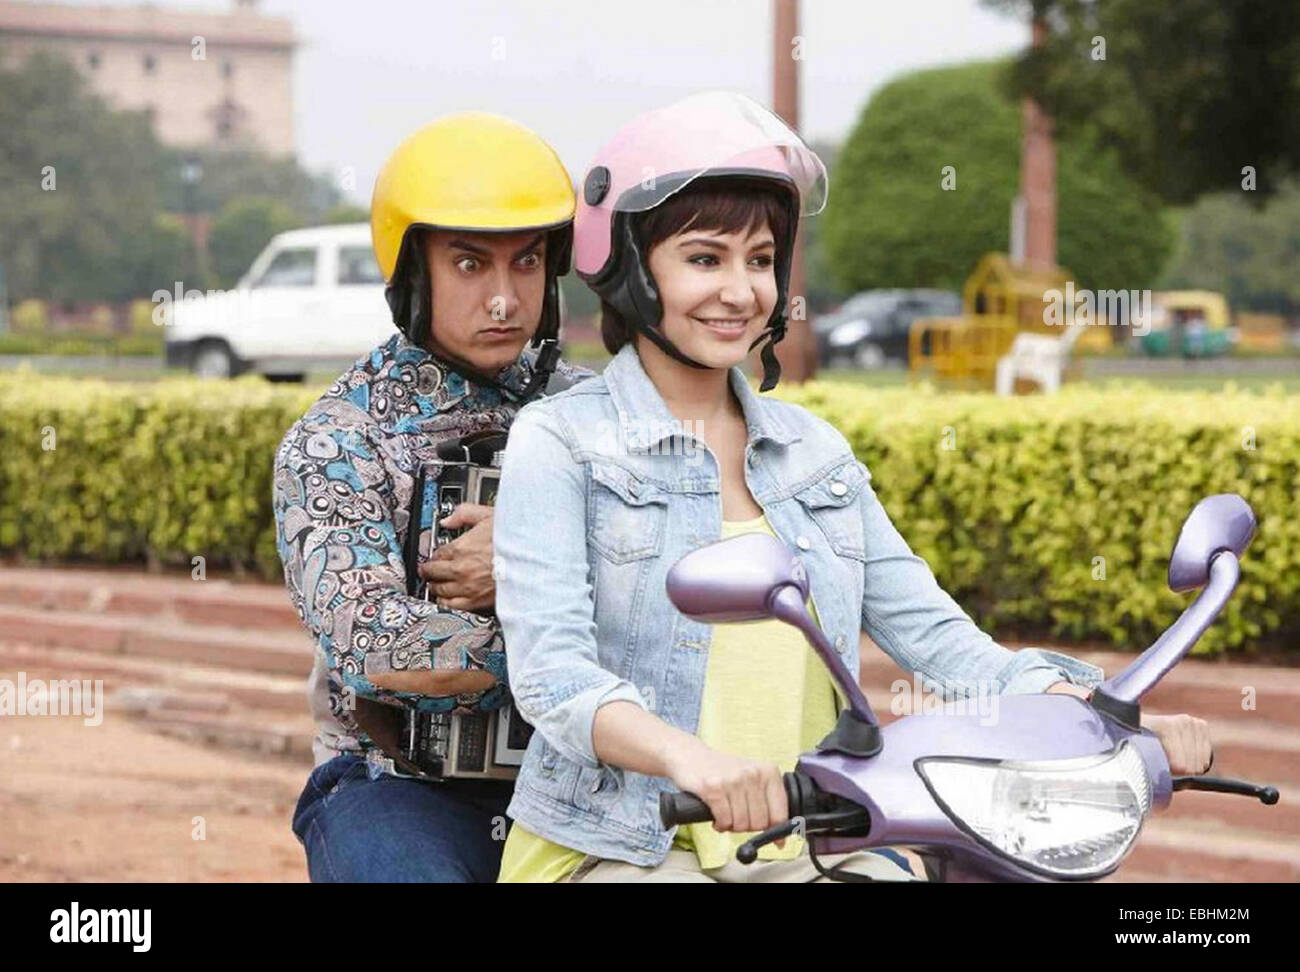 P.K.  2014 UTV Motion Pictures film with Aamir Khan and Anushka Sharma - Stock Image